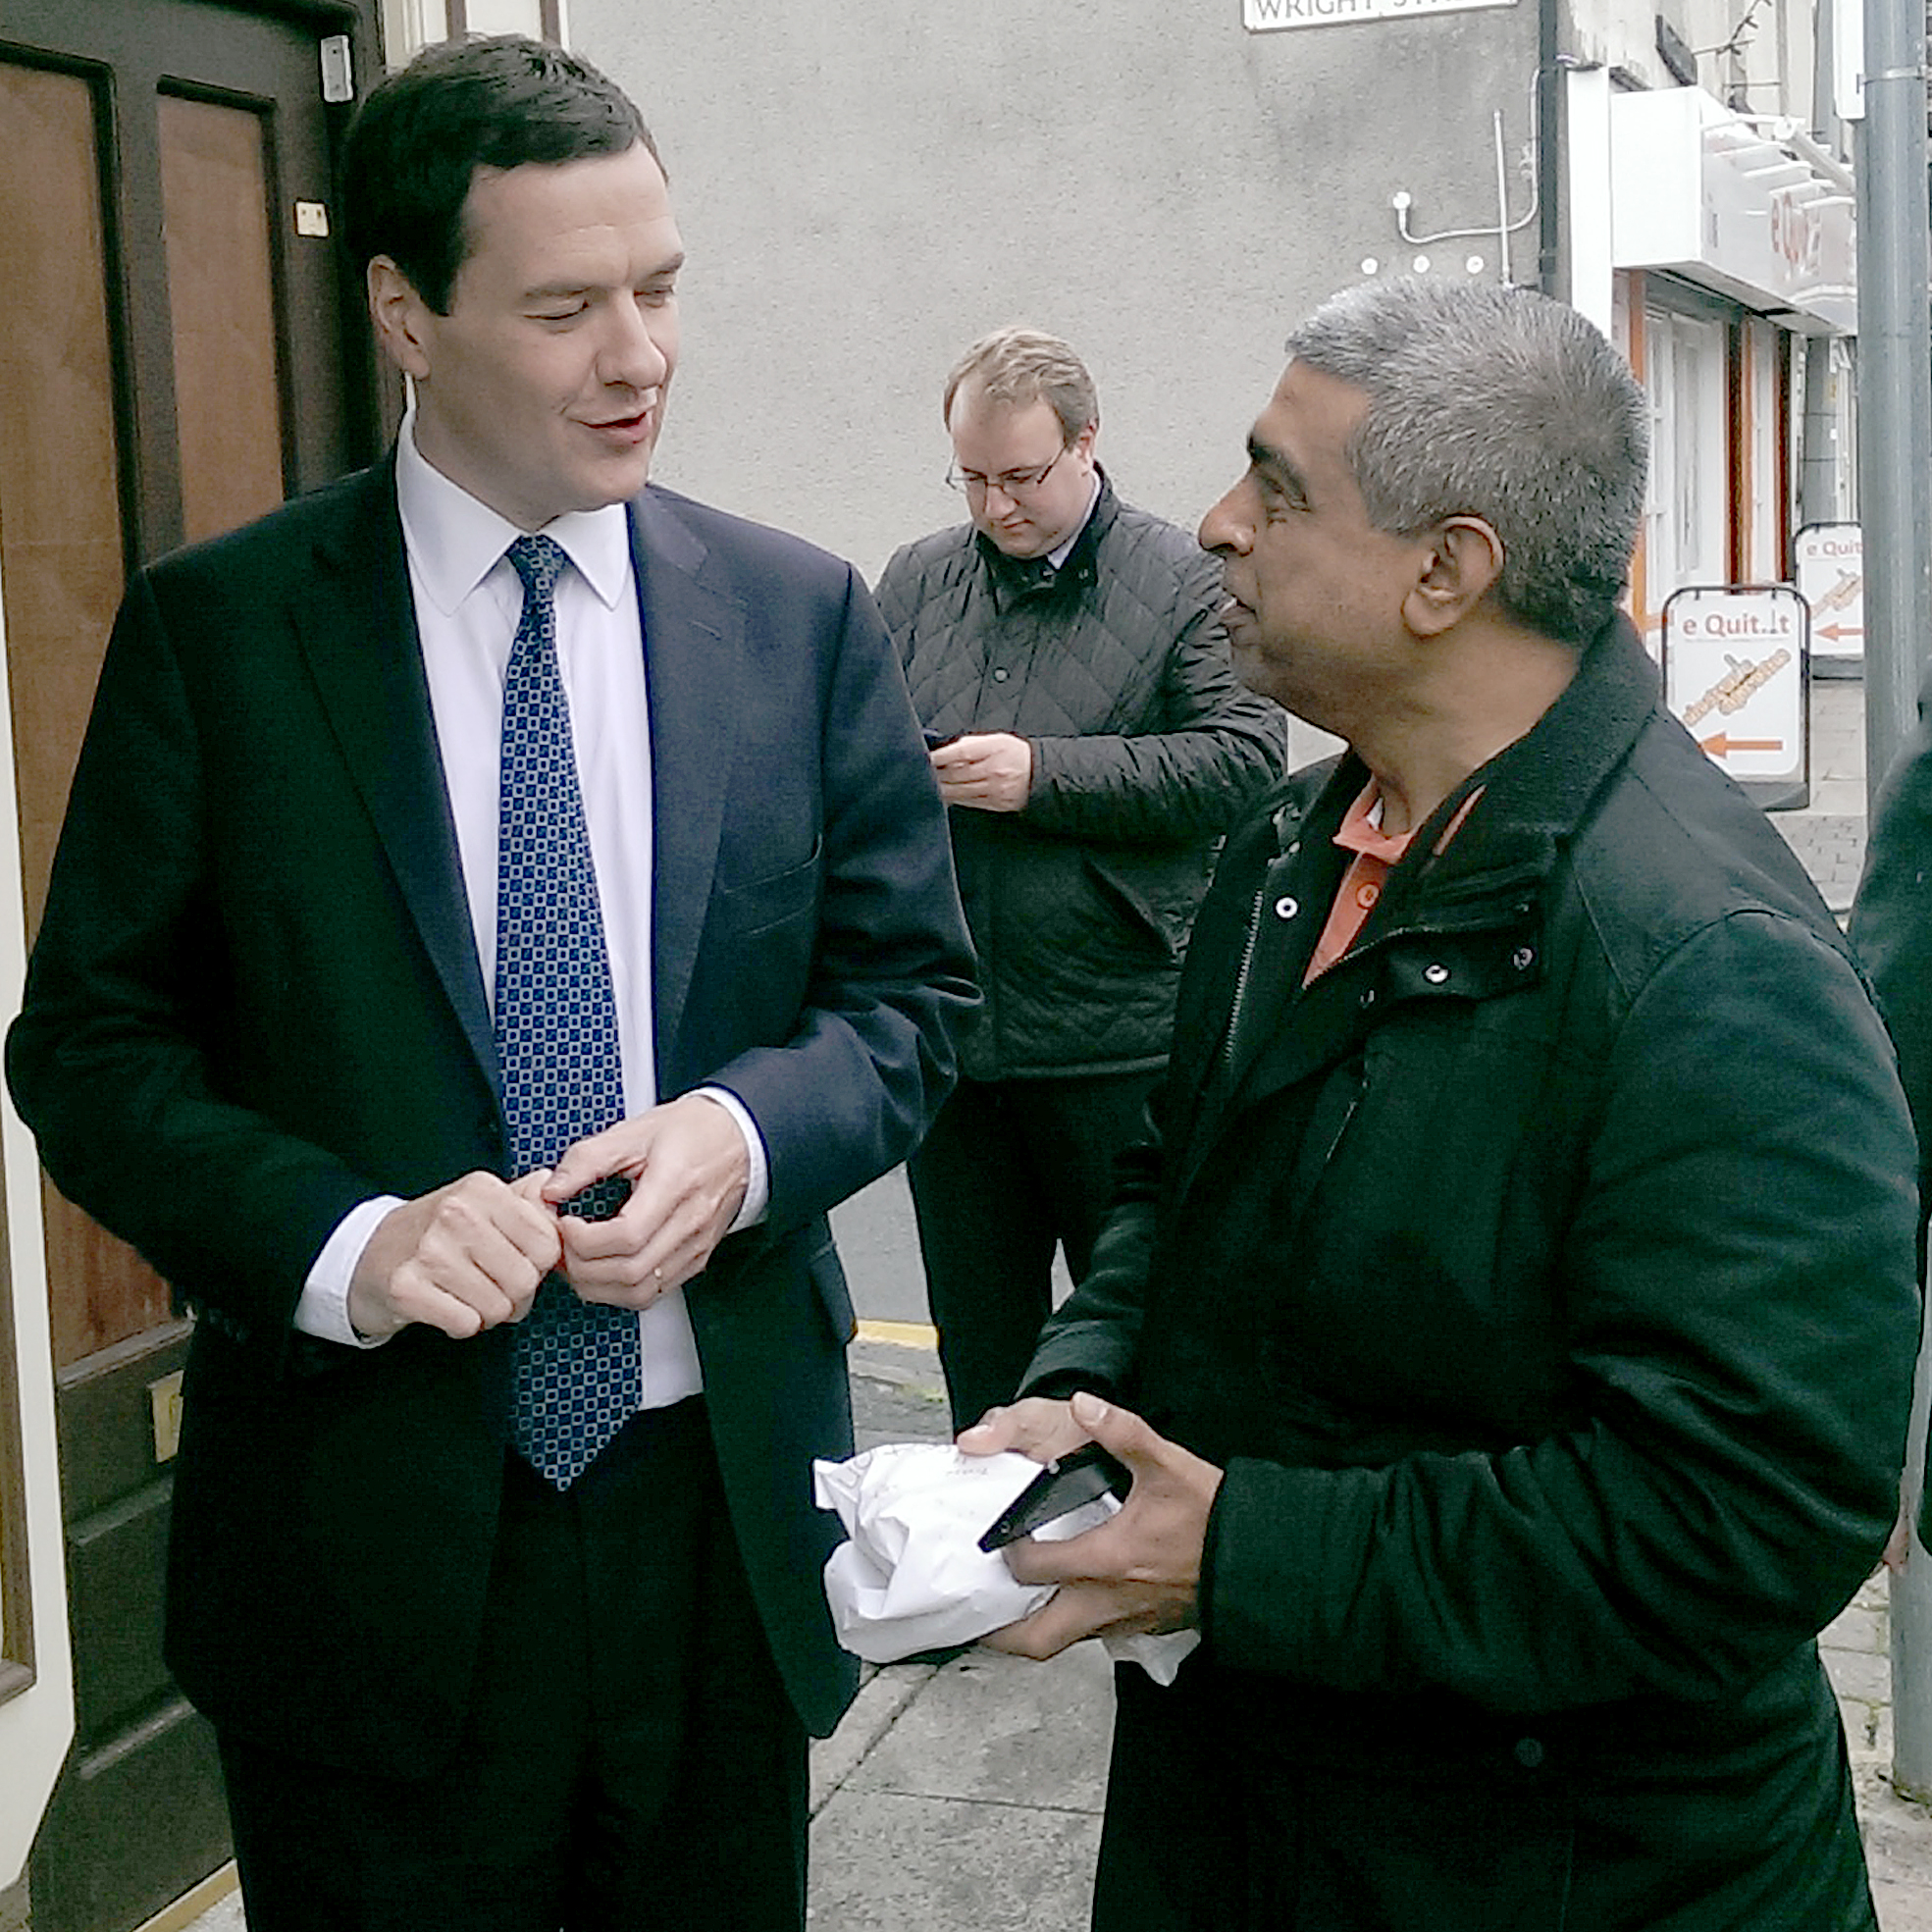 George Osborne visits Horwich. Man offers him pie. He politely declines.